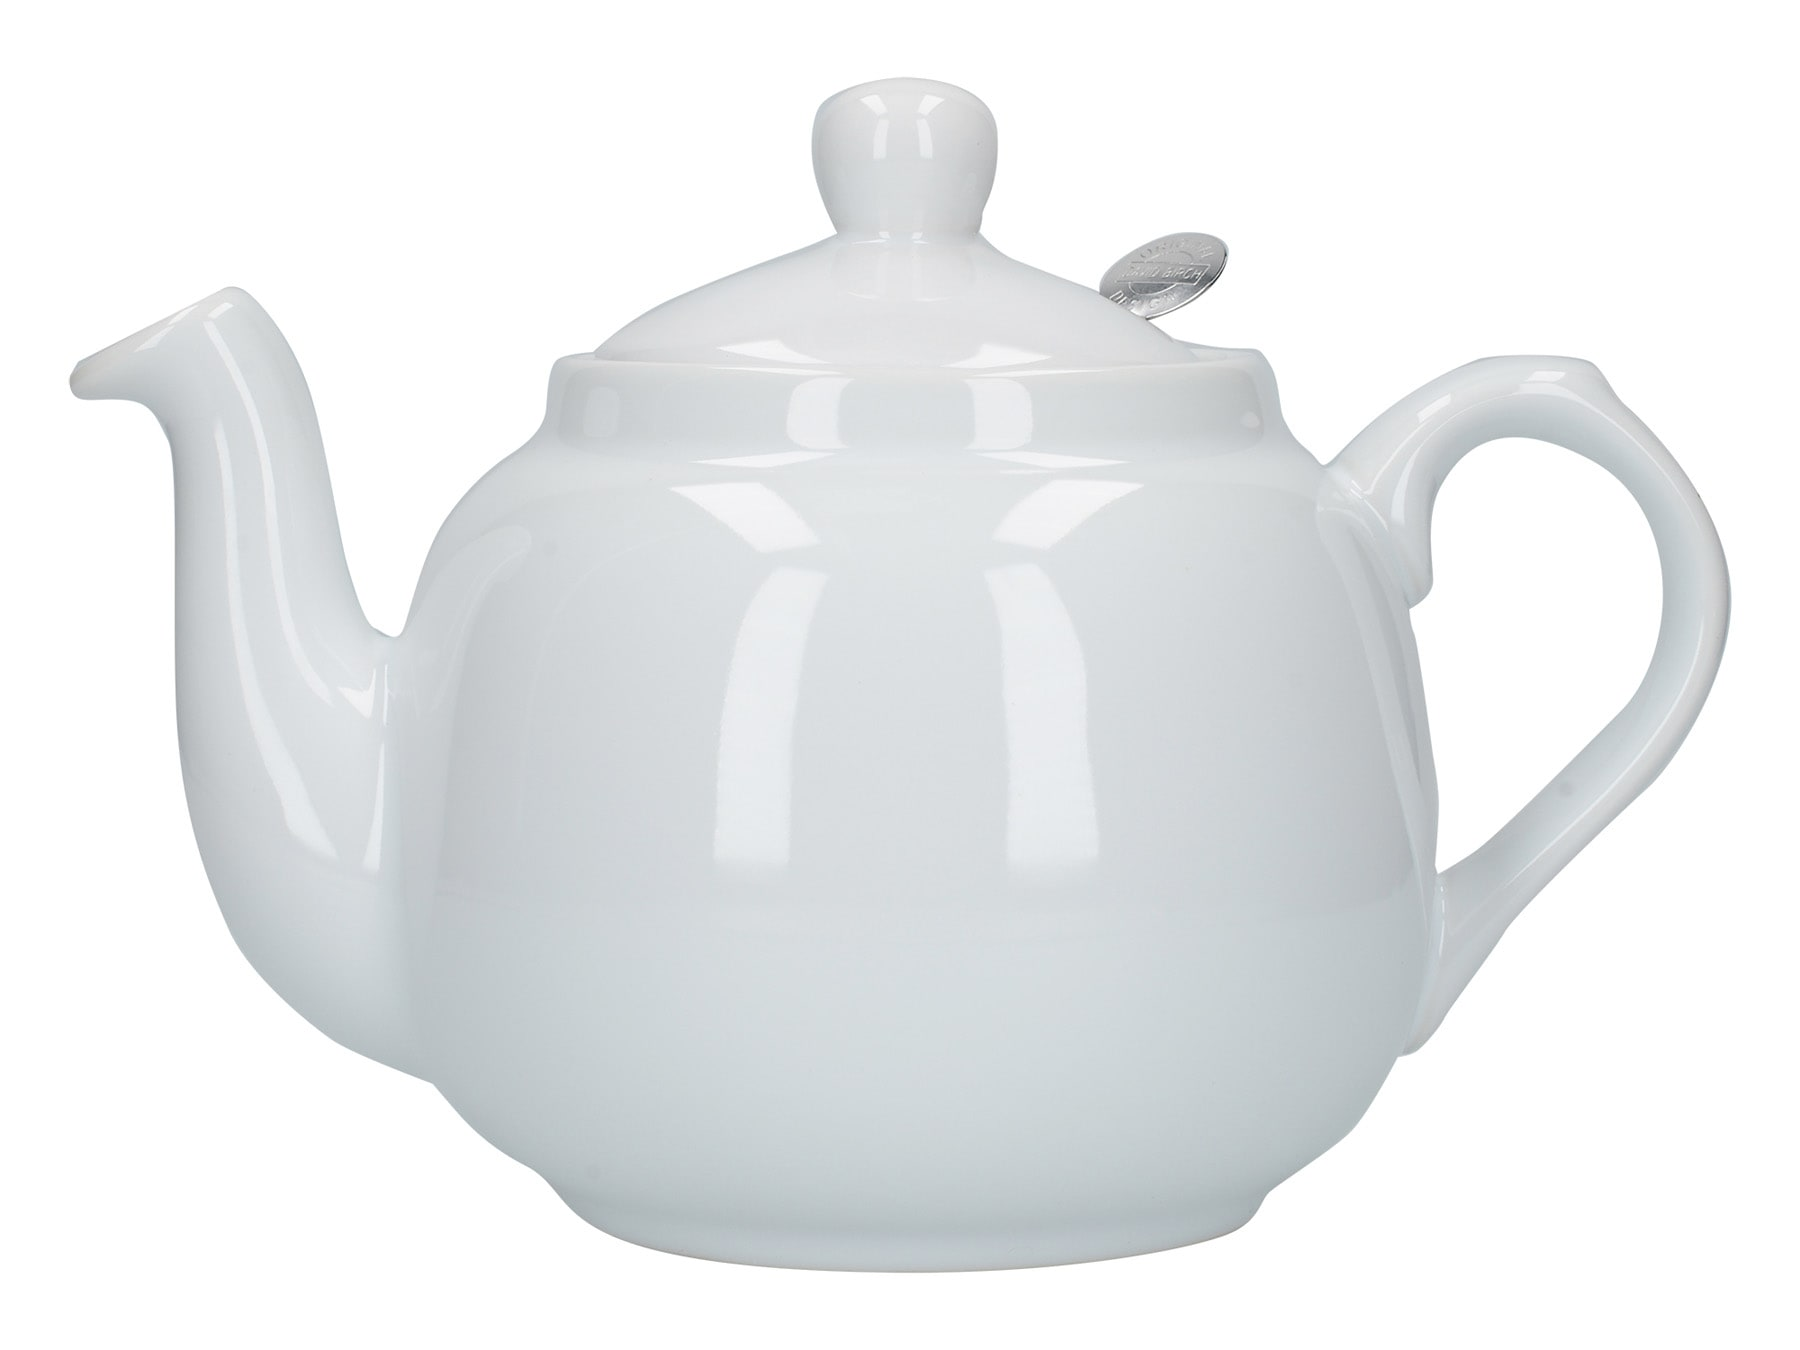 London Pottery Farmhouse 4 Cup Teapot White